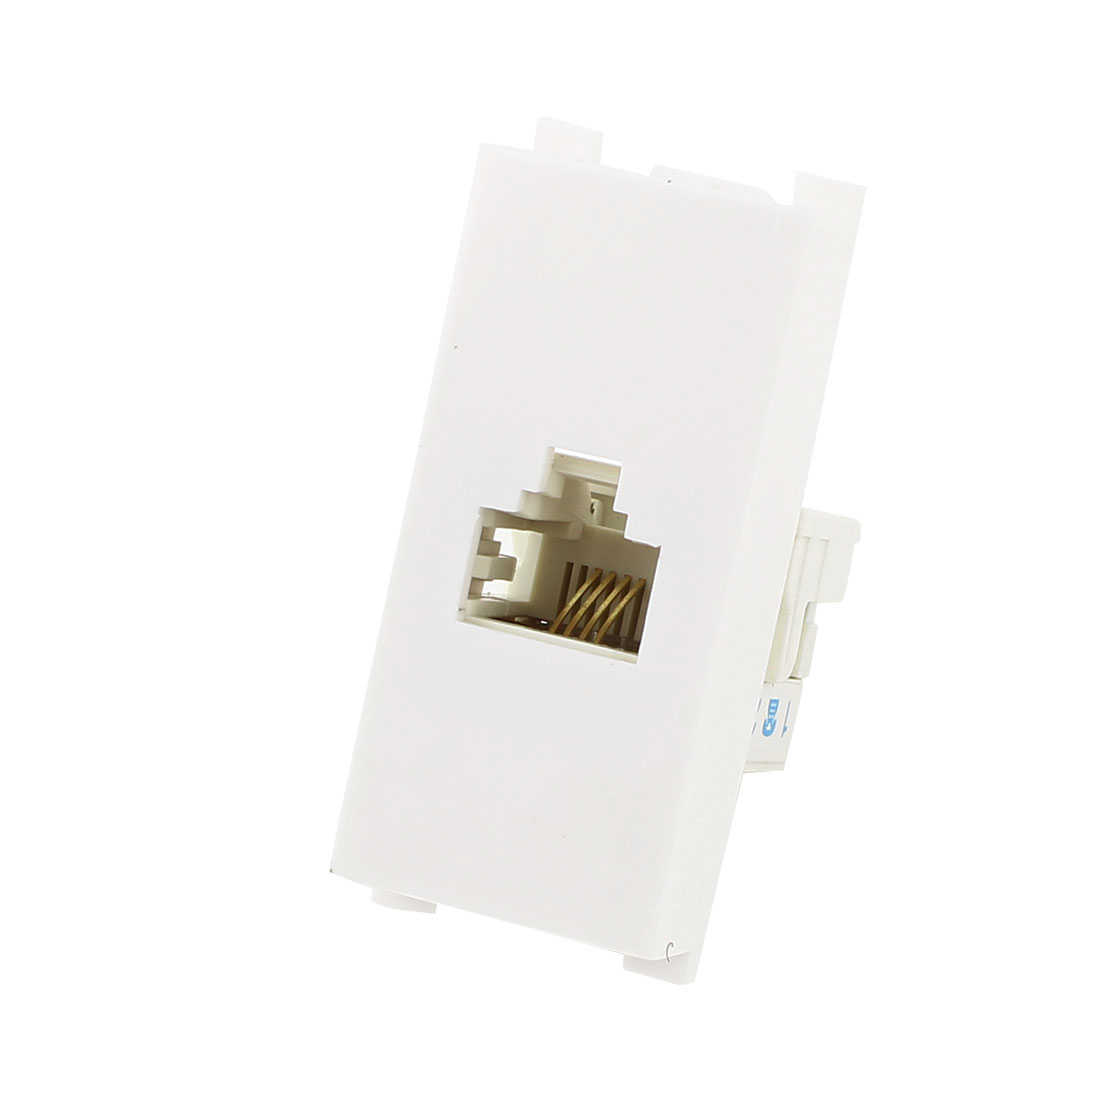 Telephone RJ11 6P4C Female Jack Module Wall Panel Plate White